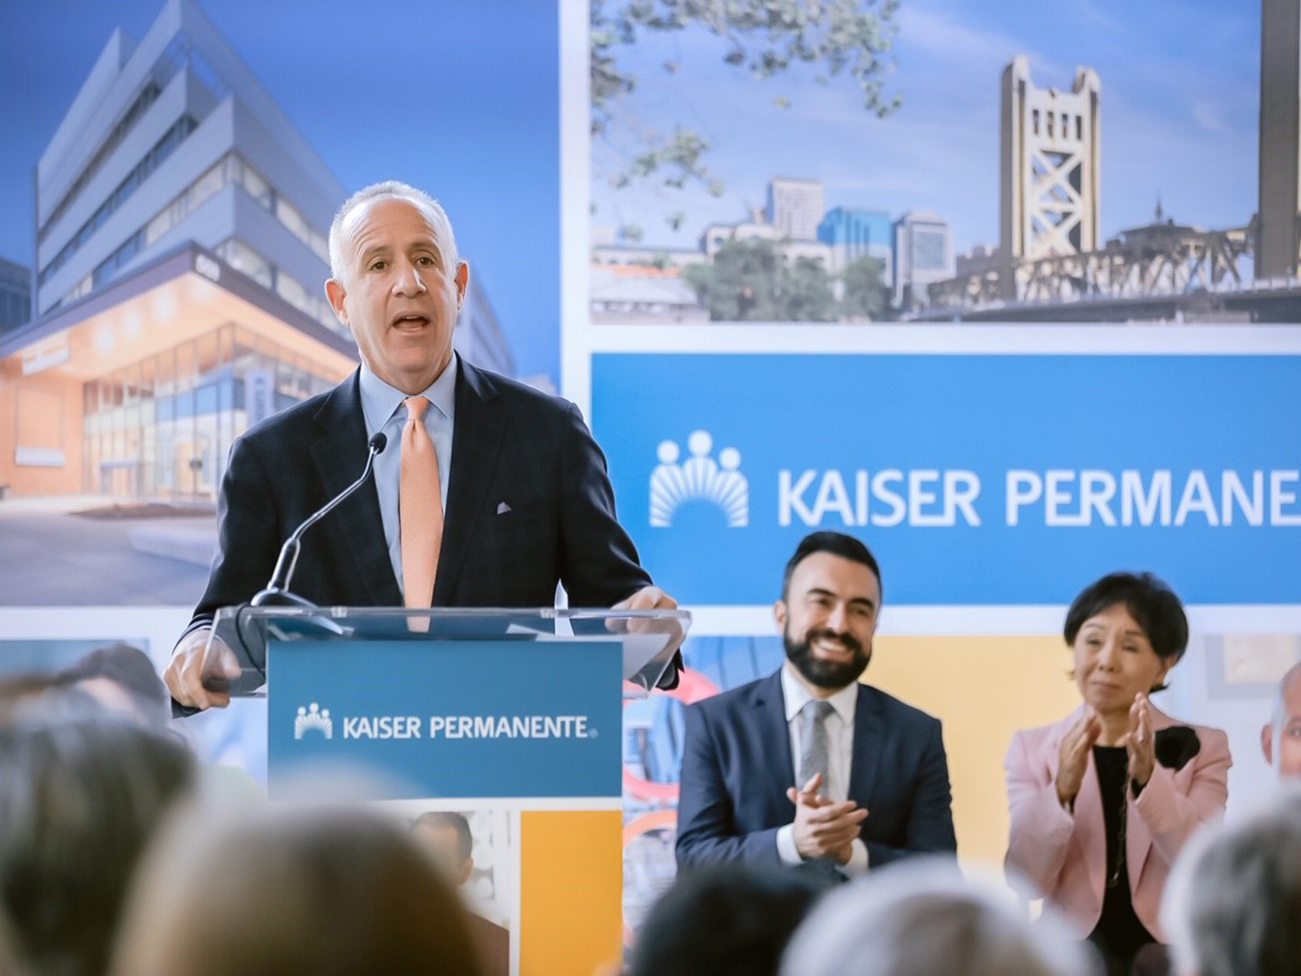 Sacramento Mayor Darrell Steinberg speaks at a press conference Thursday announcing Kaiser Permanente's $32 million commitment to affordable housing and homelessness in the Sacramento area.